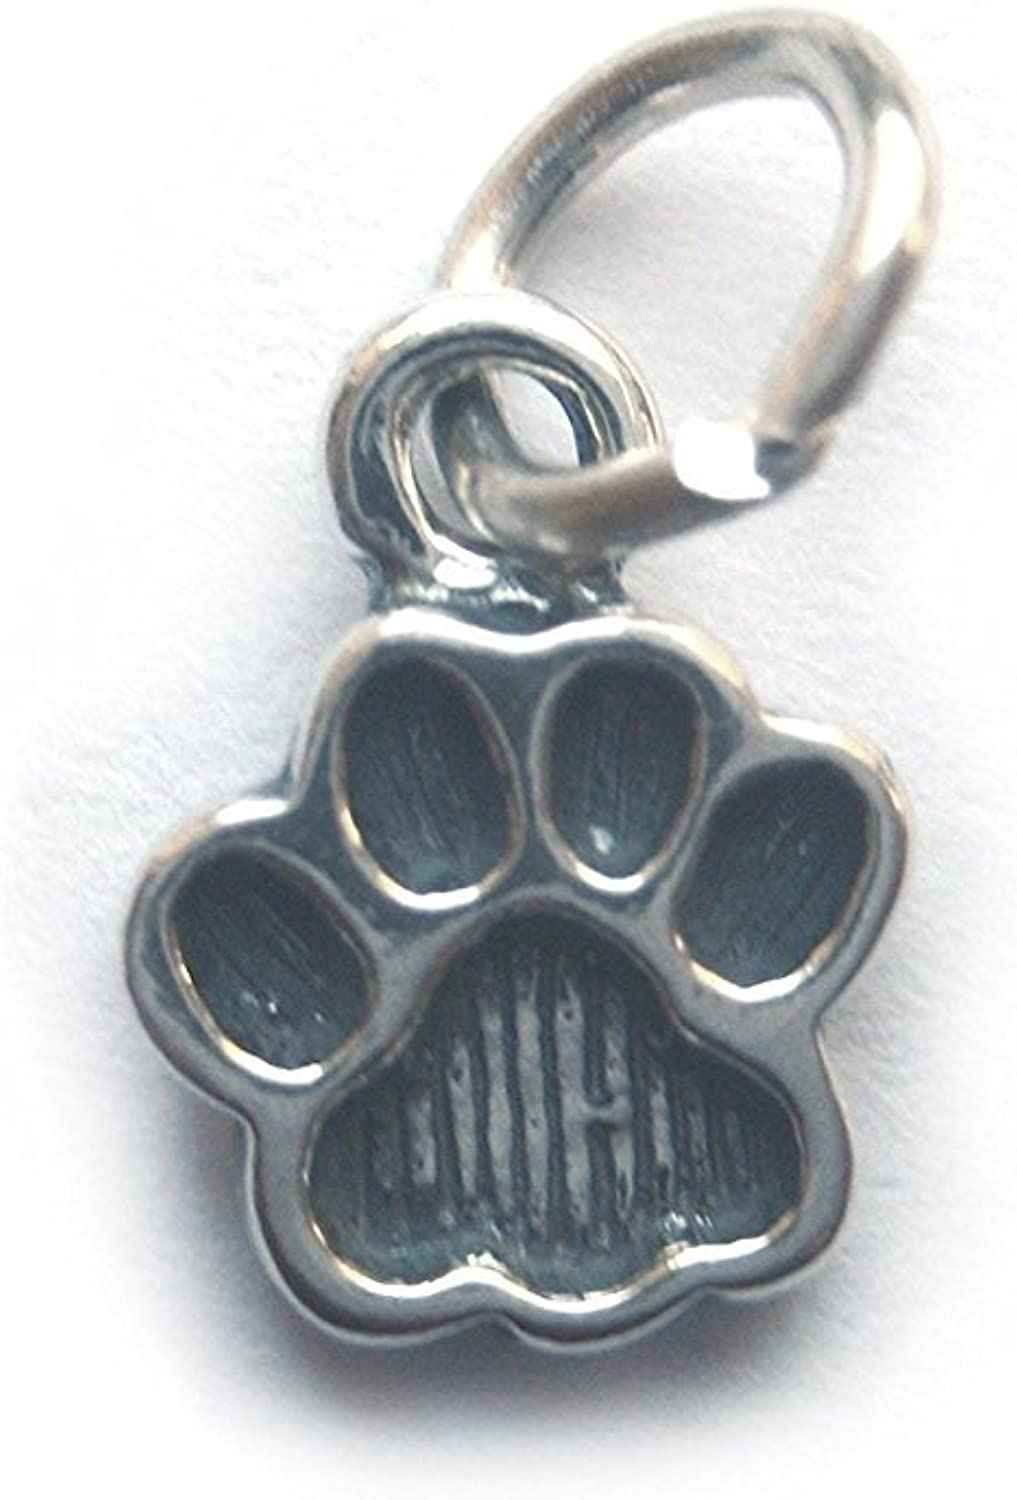 6 Qty. Small Paw Print Charm (11x9mm) .925 Sterling Silver by JensFindings